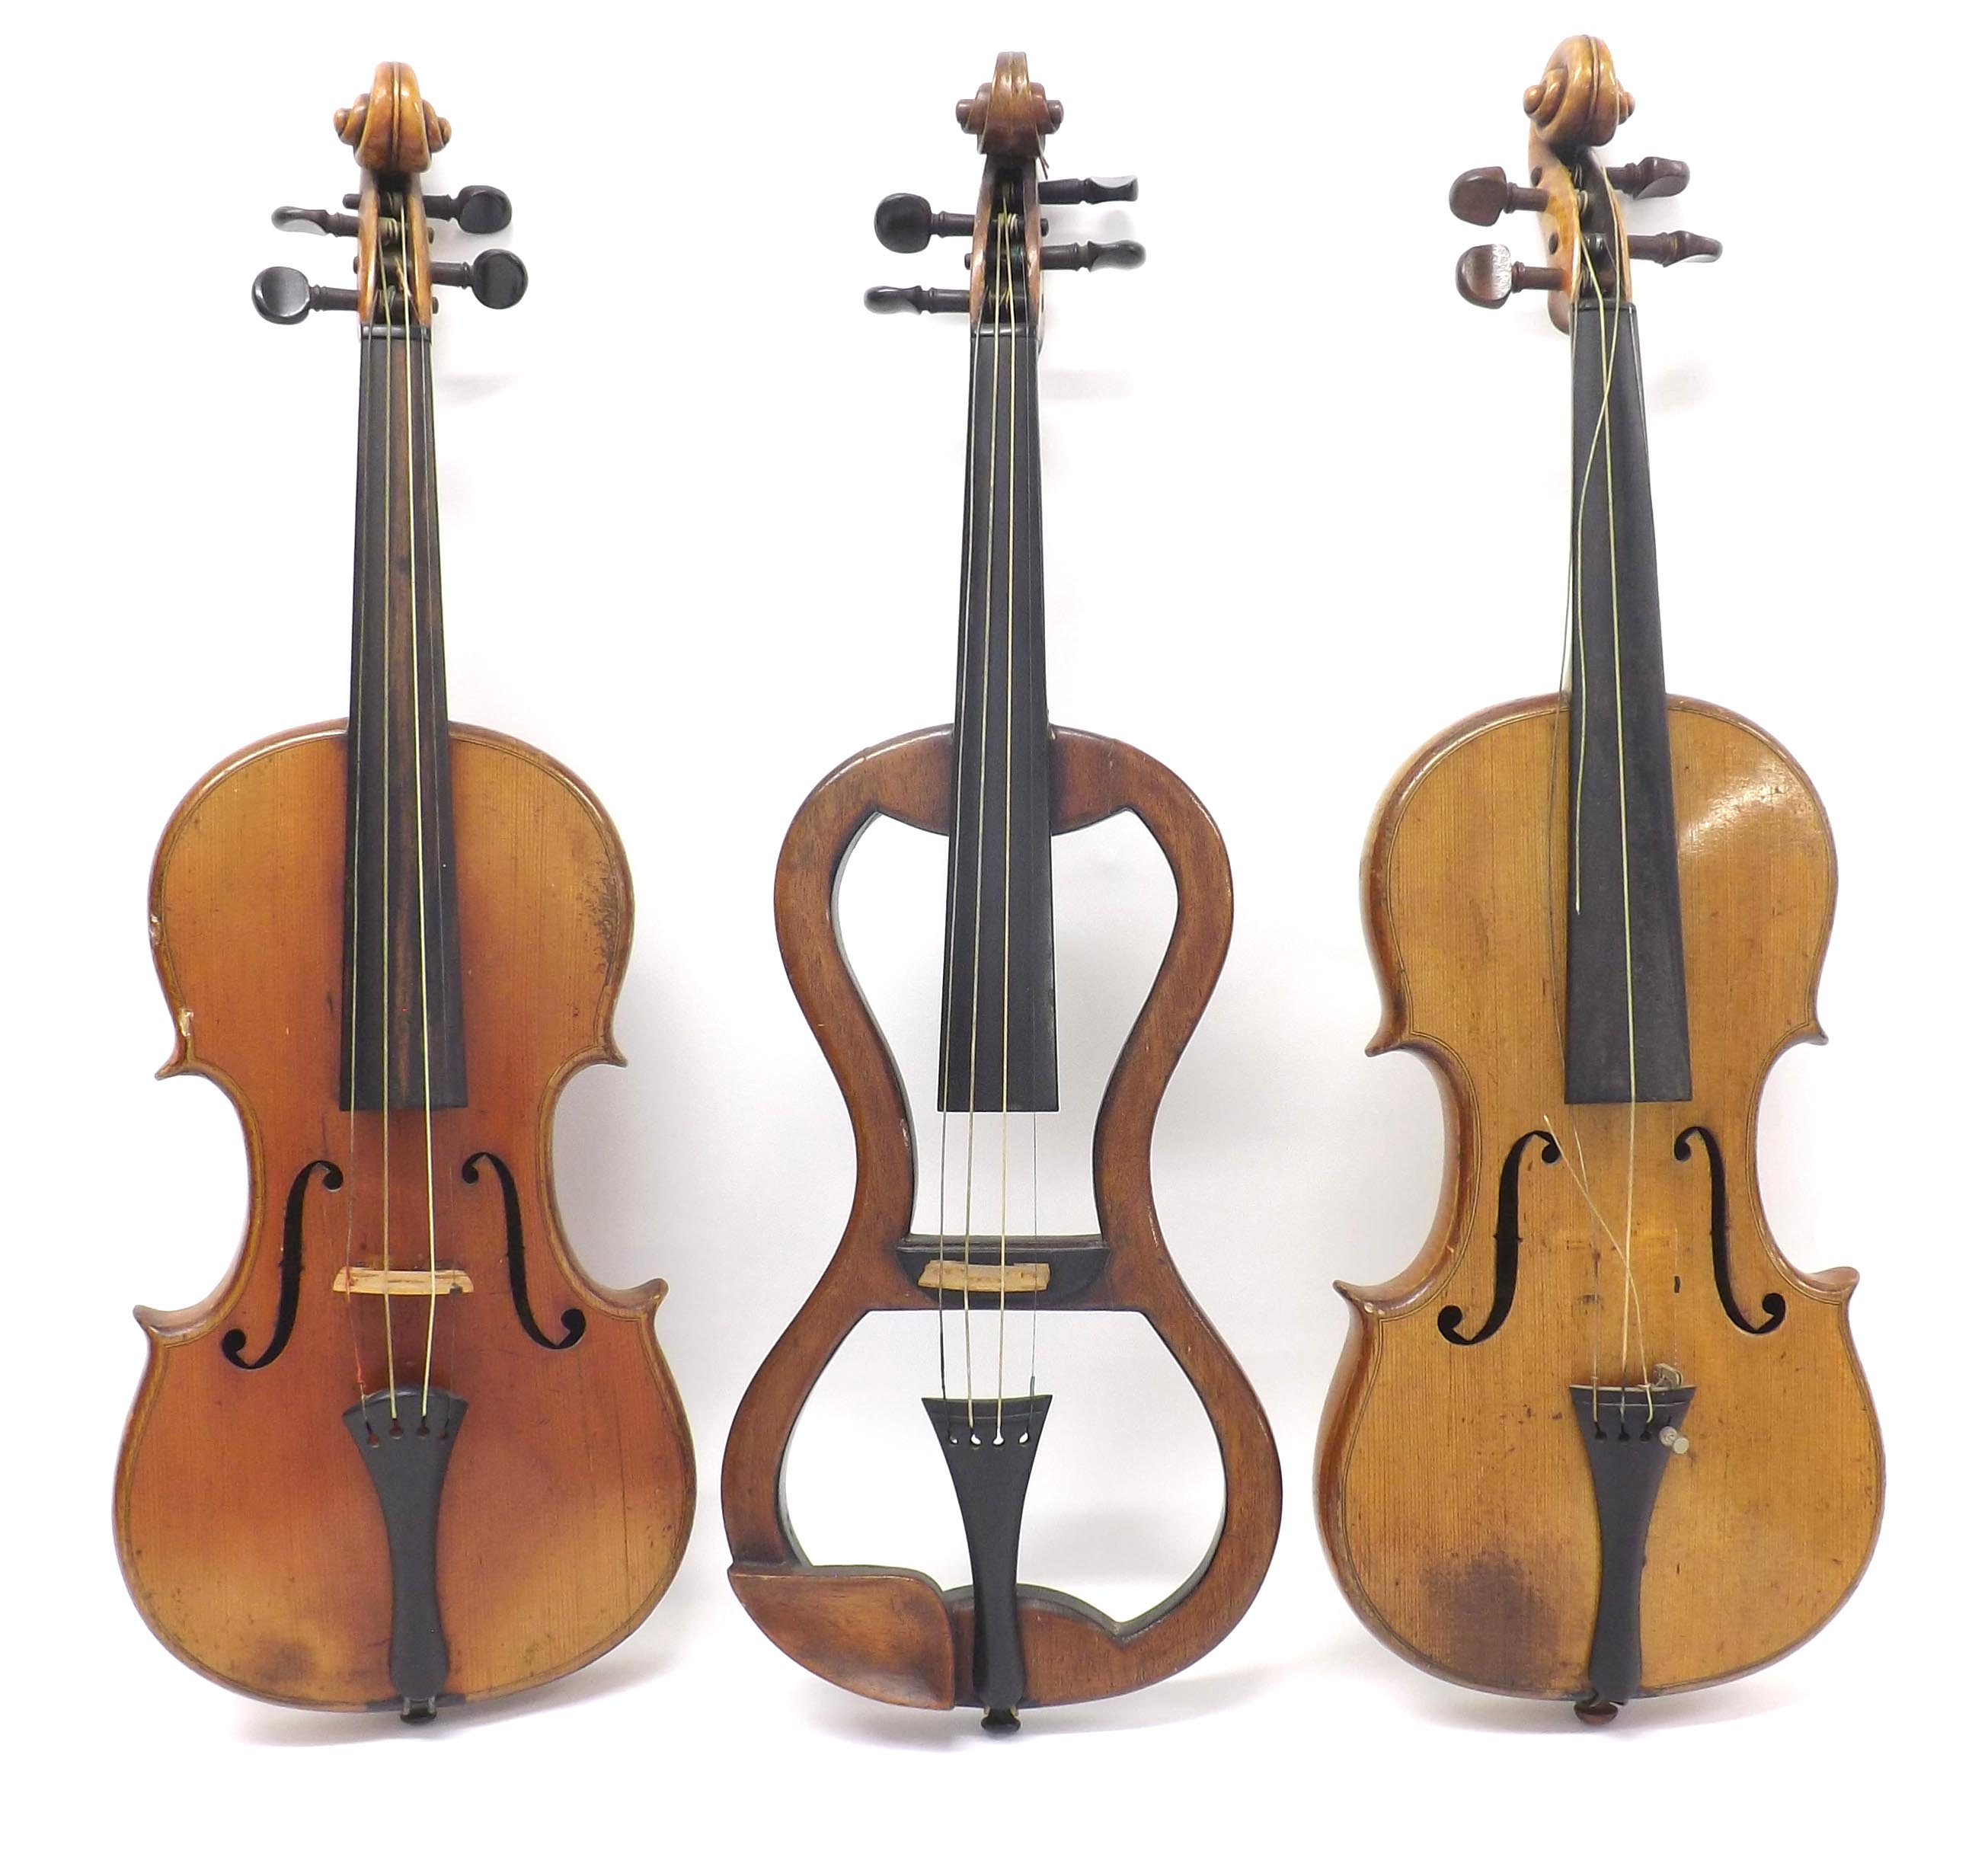 Two full size Russian violins, both labelled Rigart Rubus